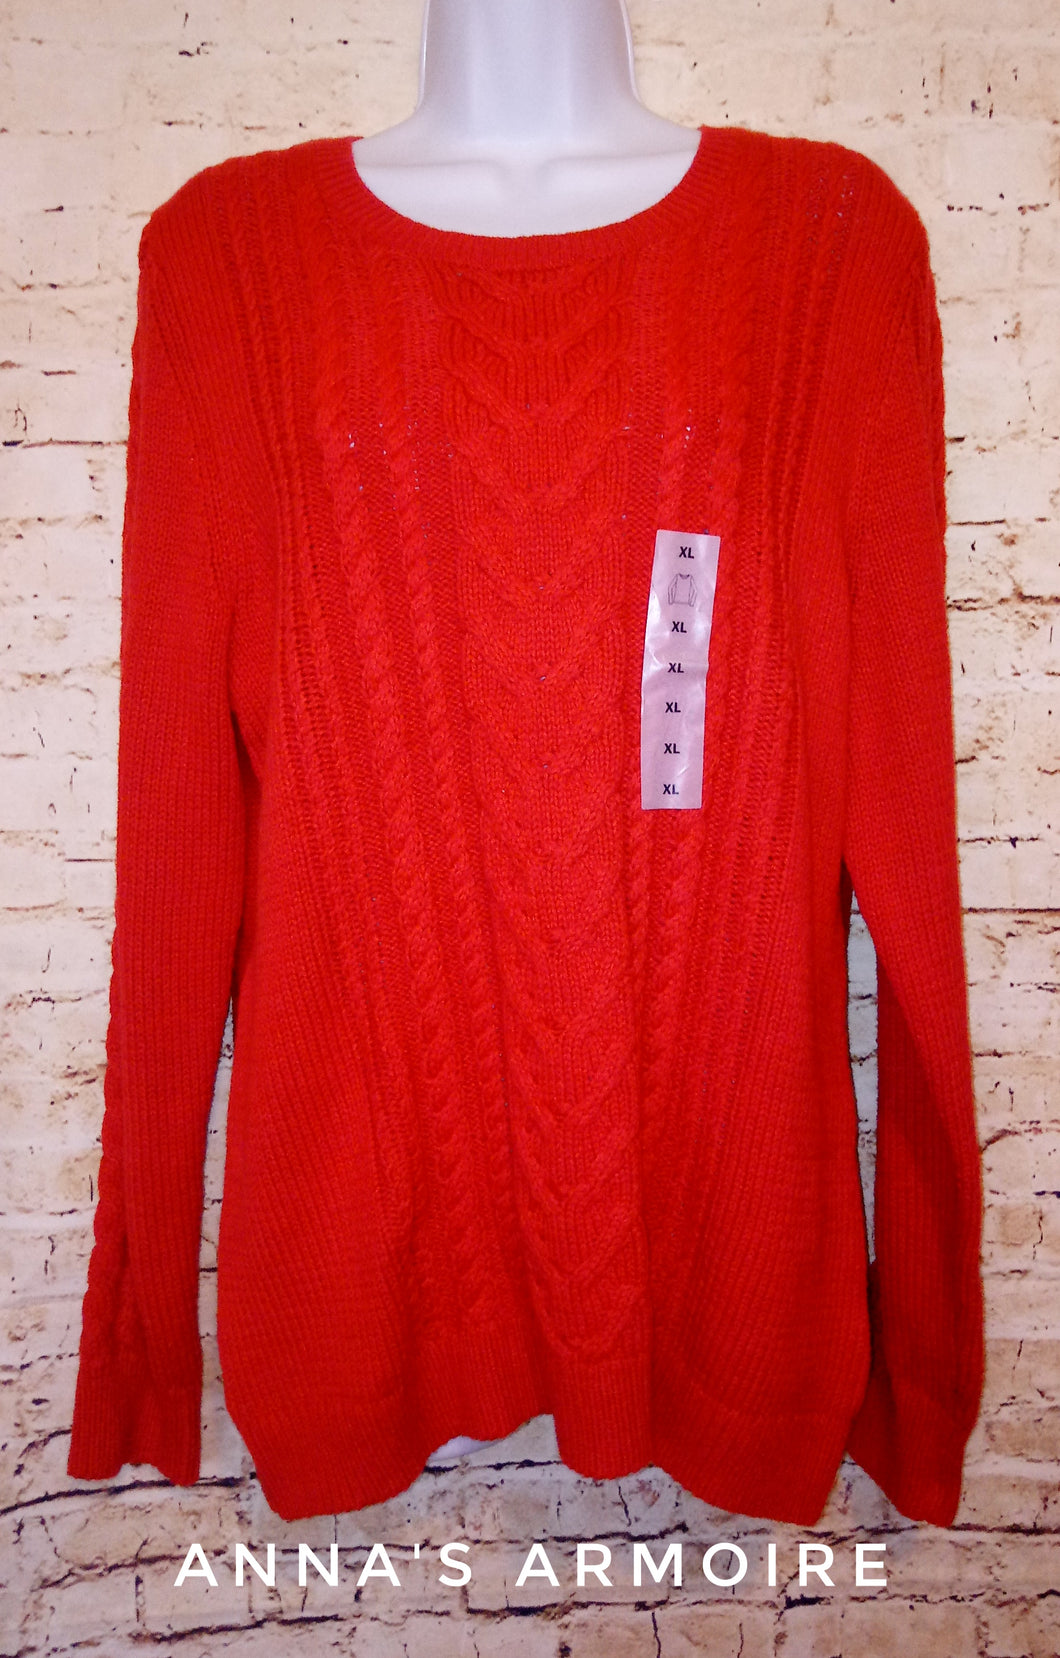 New with Tags Old Navy Cable Knit Sweater Size XL - Anna's Armoire